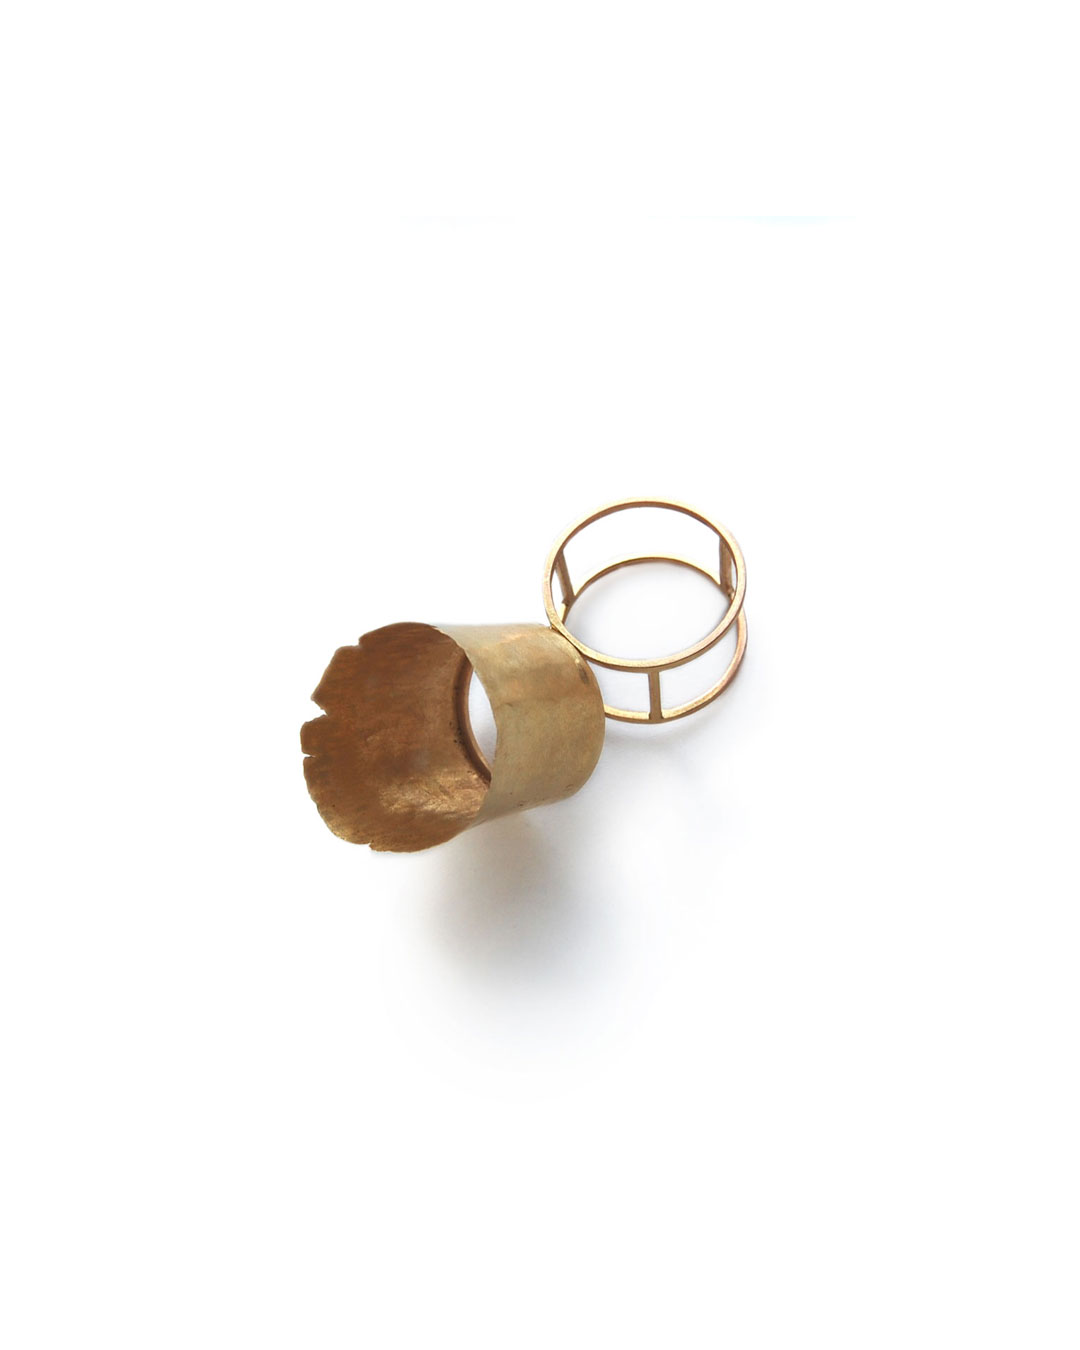 Stefano Marchetti, untitled, 2008, ring; gold, 41 x 41 x 36 mm, €3000